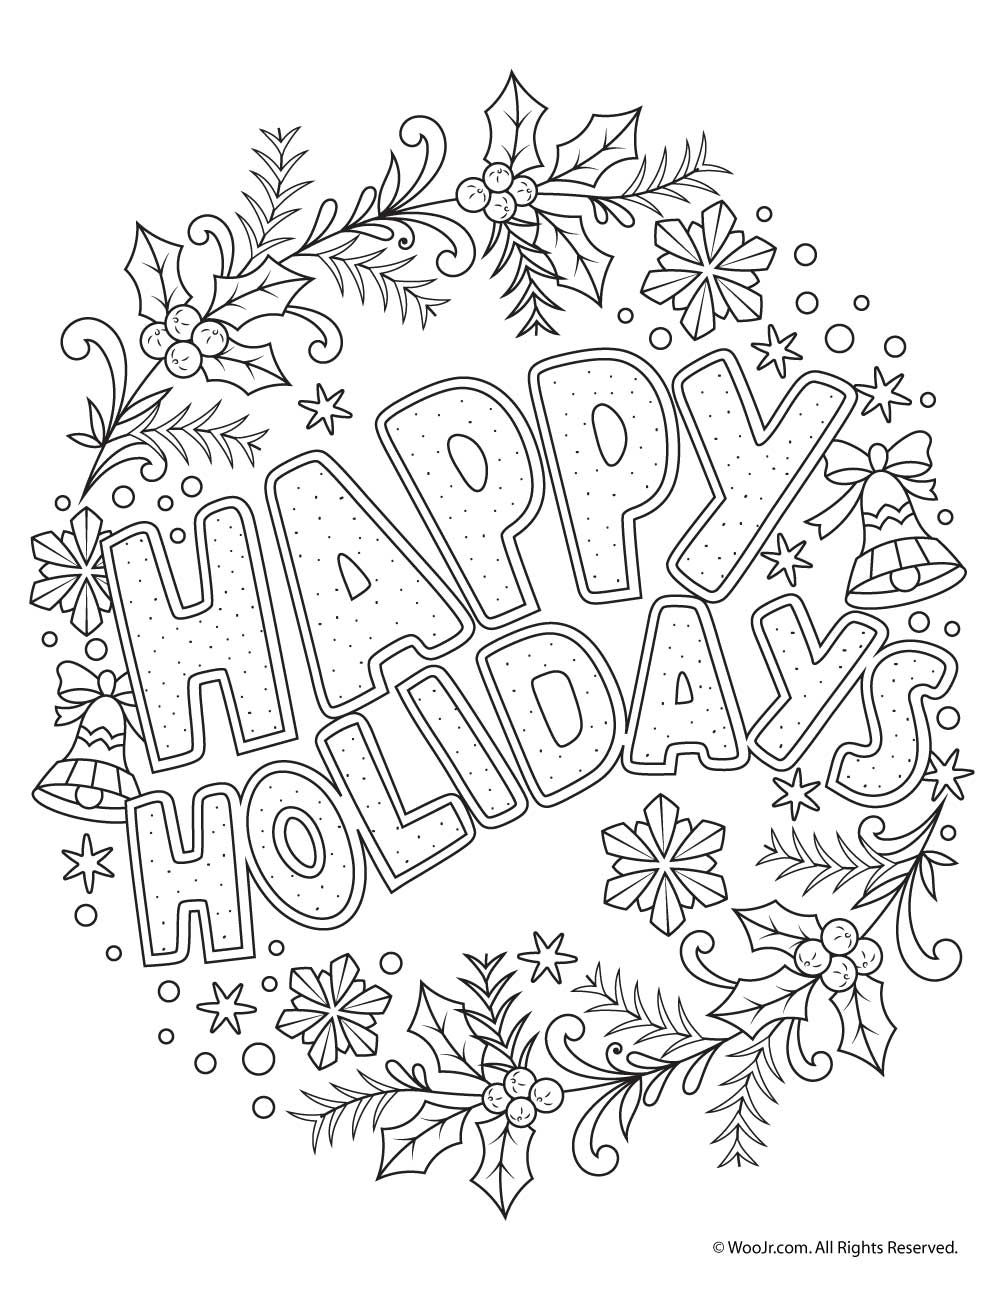 free online coloring pages for adults christmas serendipity adult coloring pages seasonal winterchristmas coloring for free online pages adults christmas